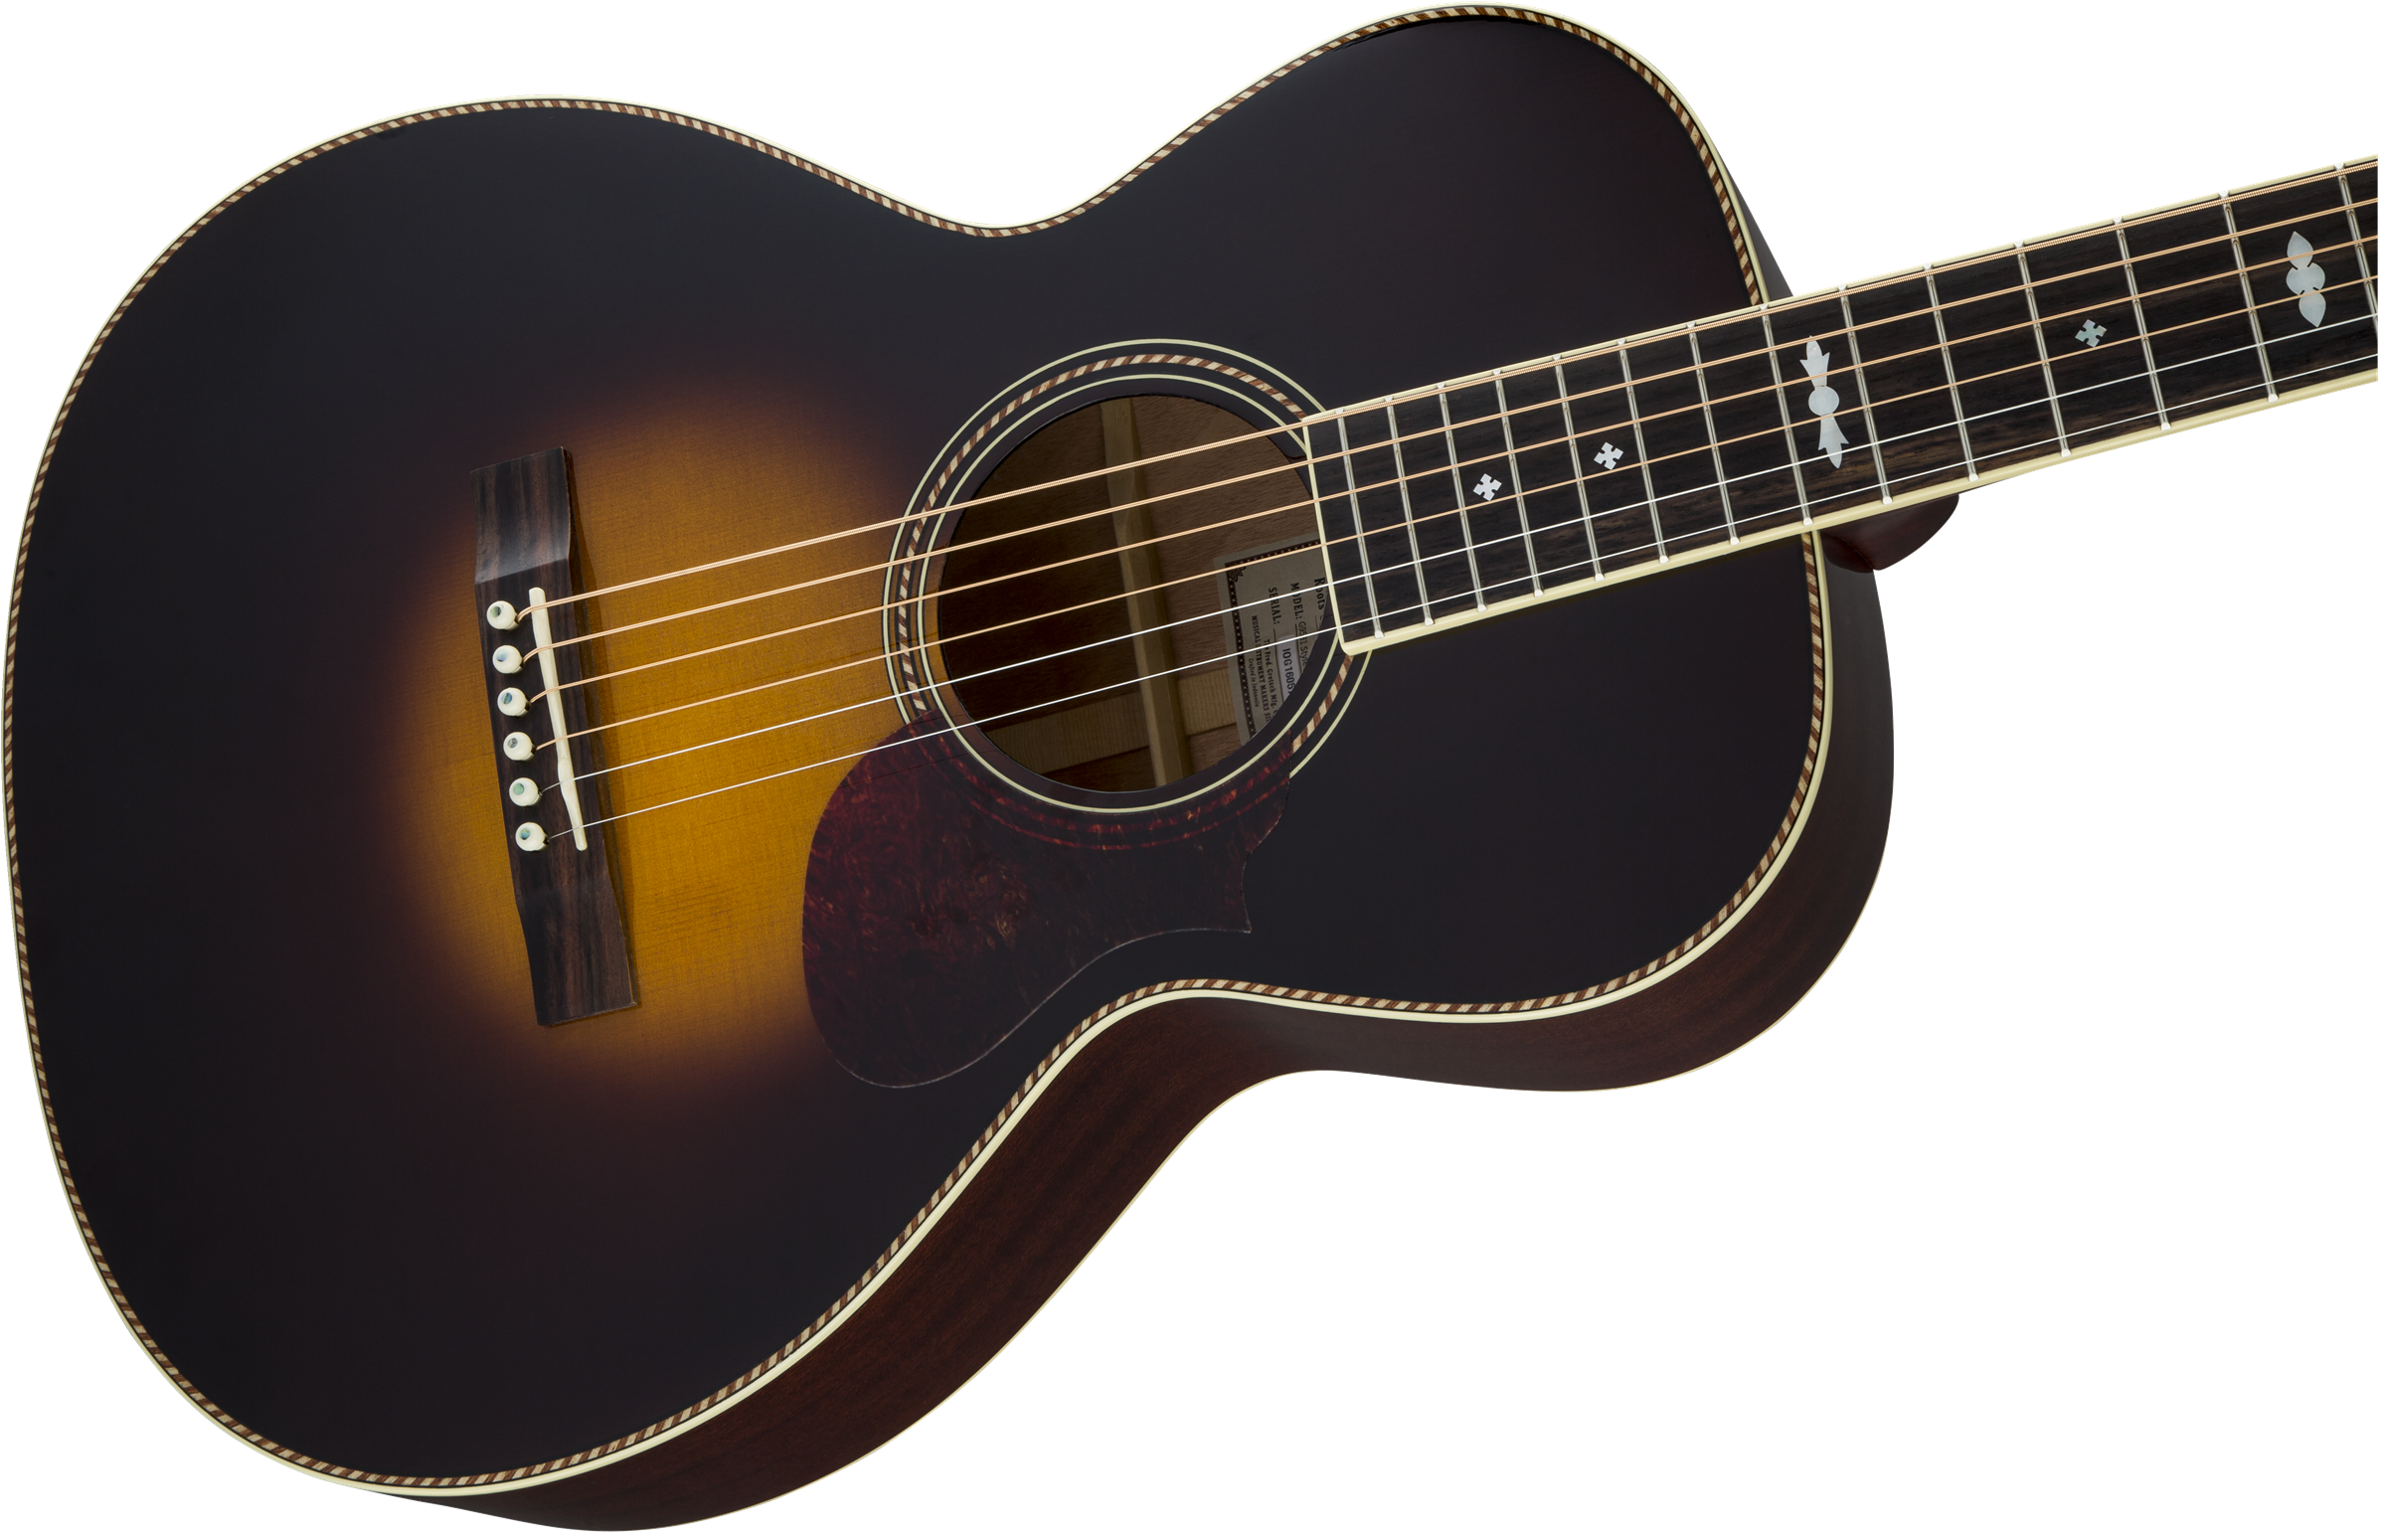 Guitar clipart concert. Cliparthot of and acoustic